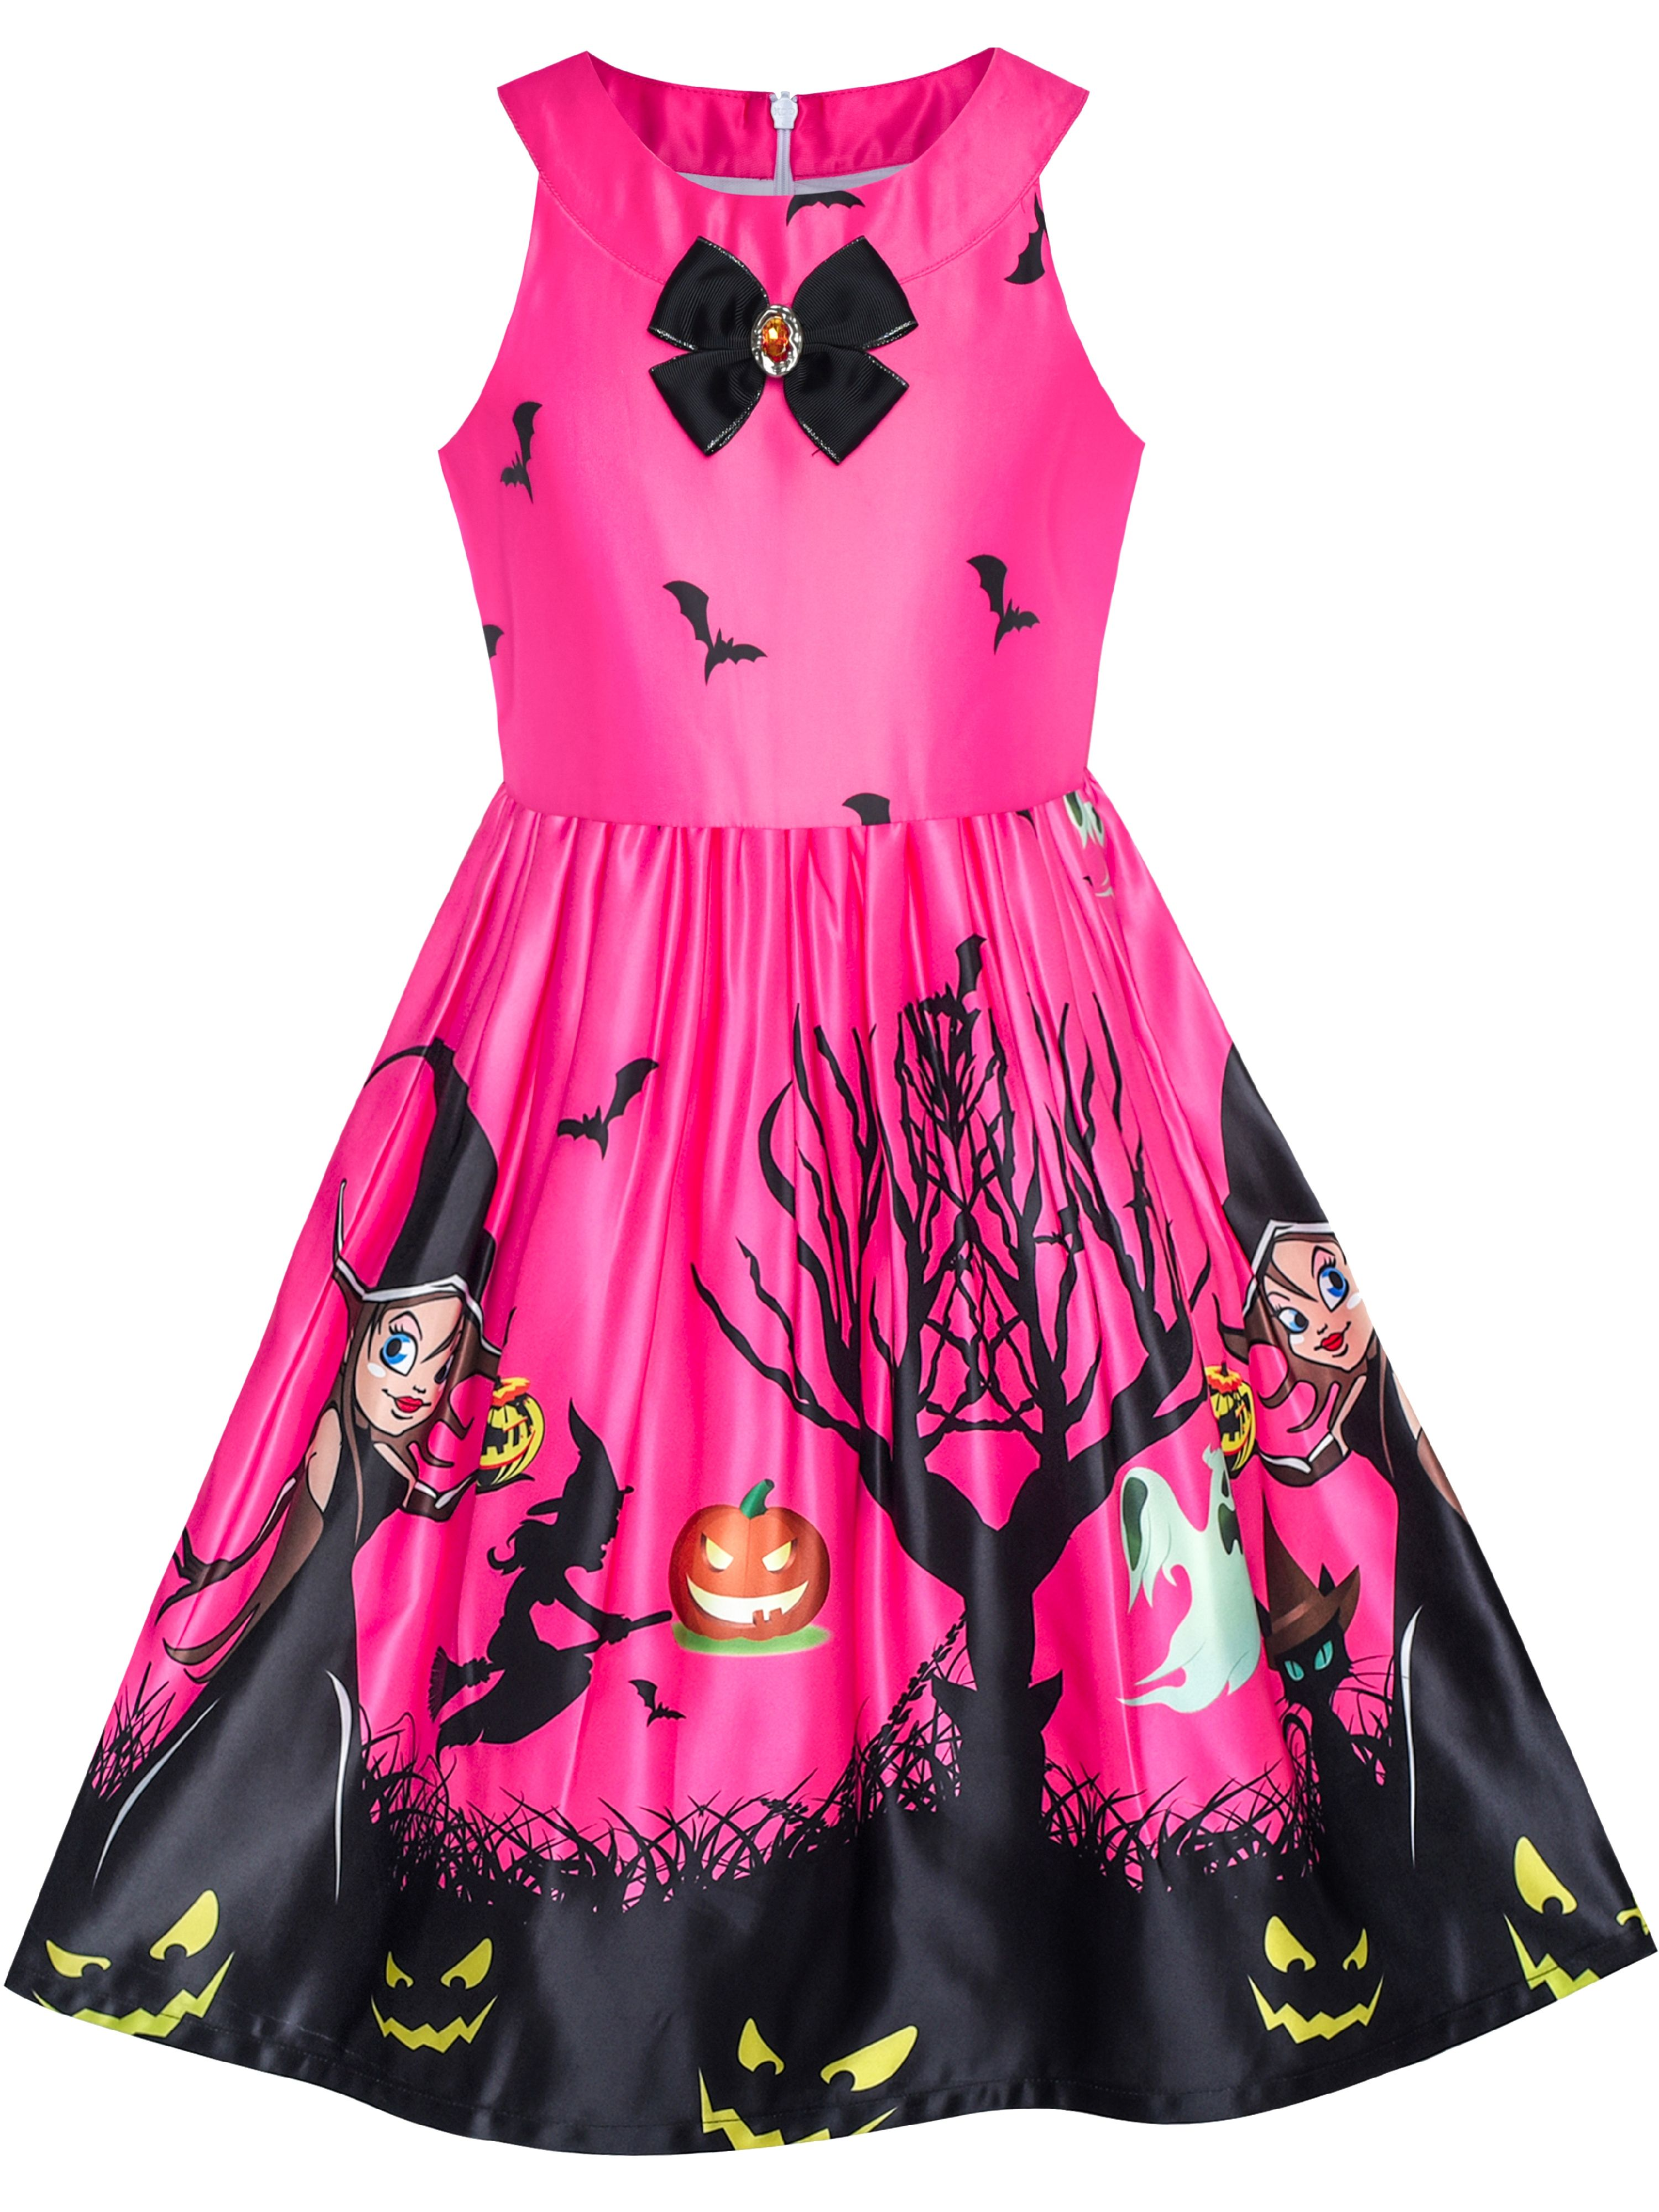 Girl National Pageant Wedding Graduation Formal Dress Fuchsia 3,4,5,6,7,8,10-14